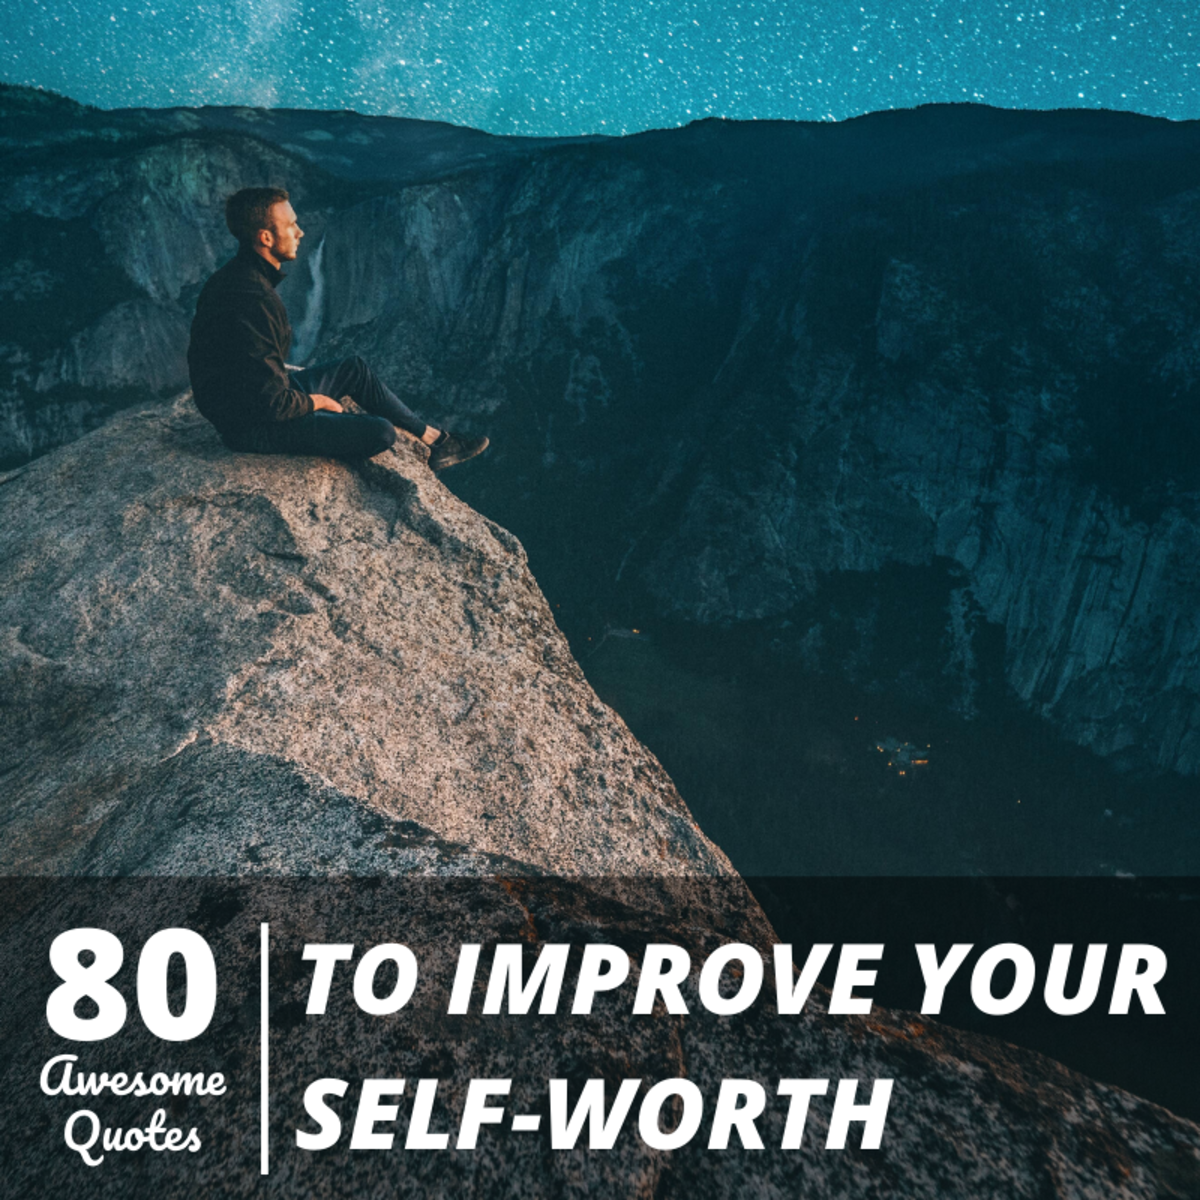 We can all be our own worst critic at times. These quotes can help you maintain a healthier perspective on yourself.